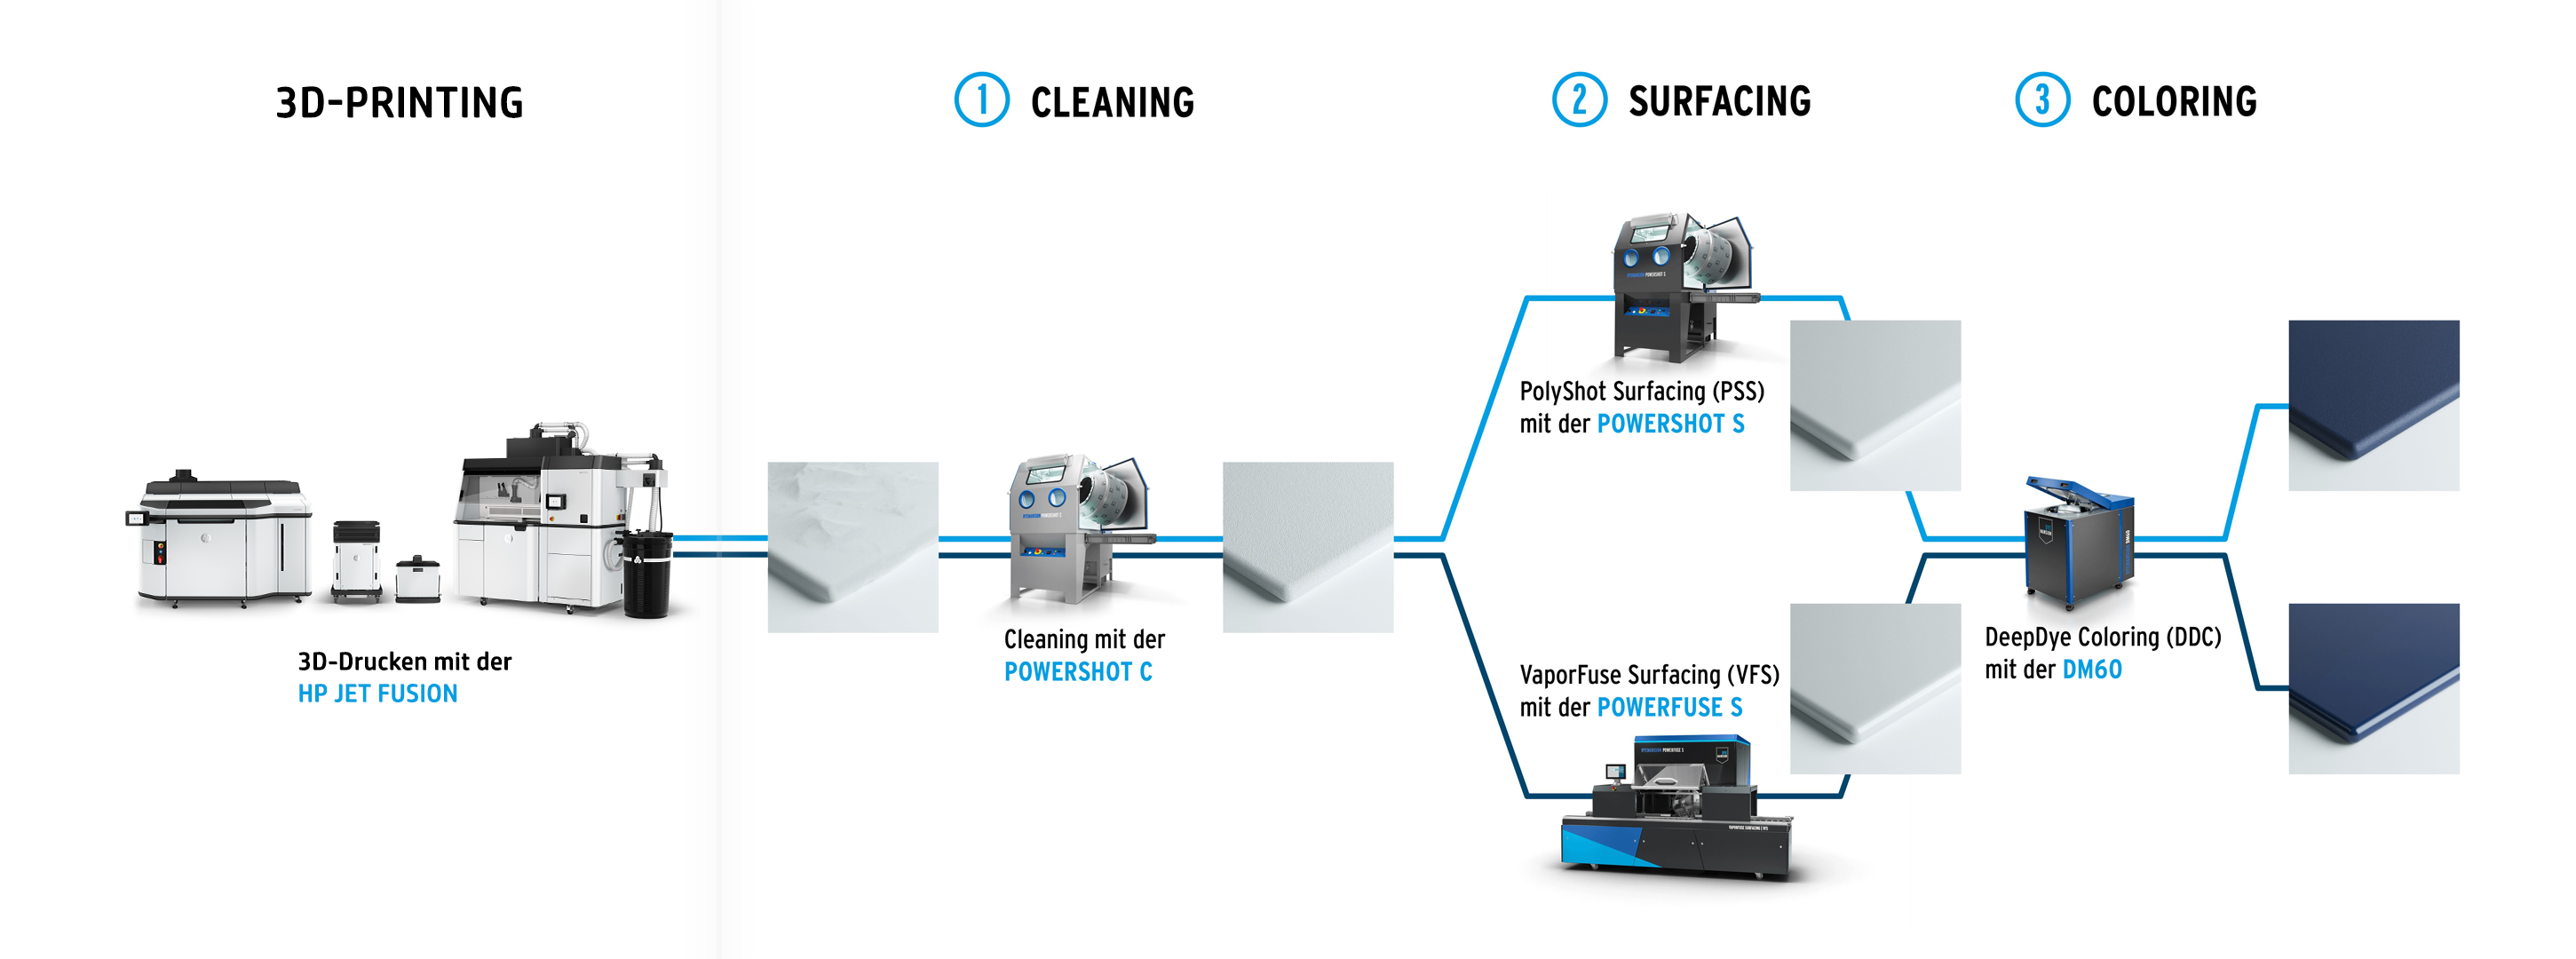 3D-Printing Cleaning Surfacing Coloring